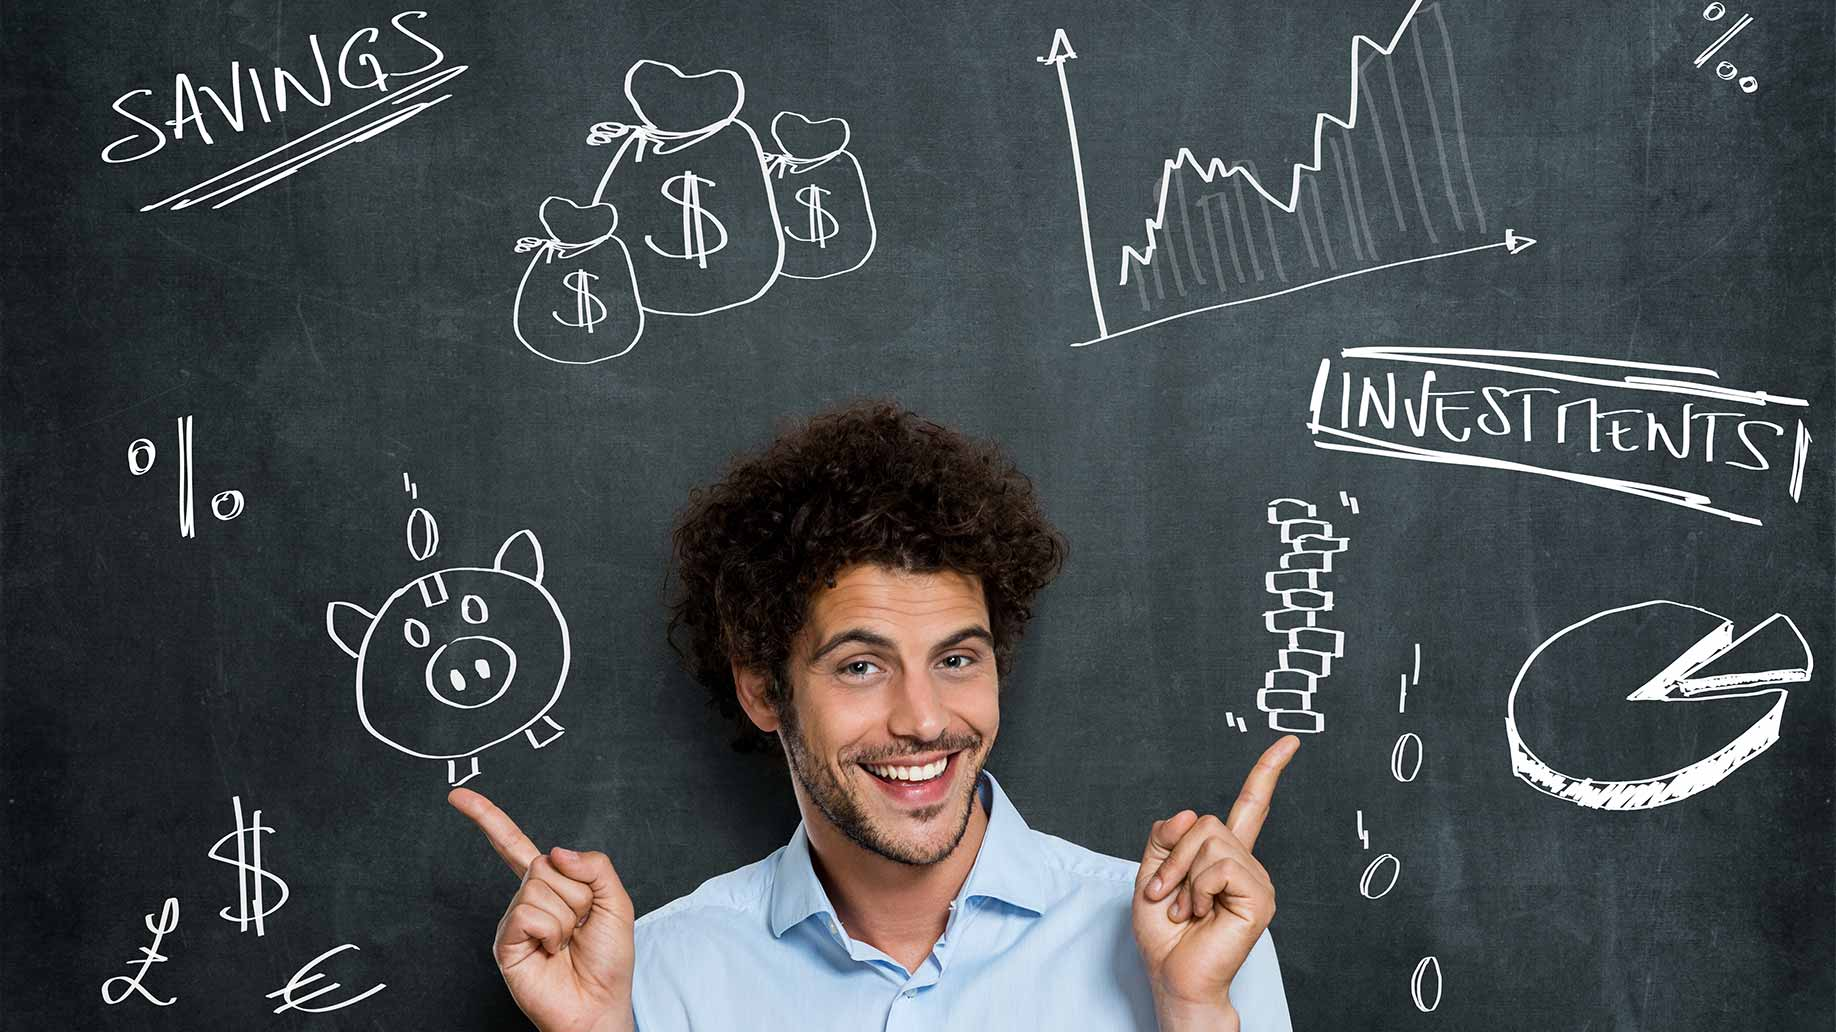 young guy savings investments chalkboard